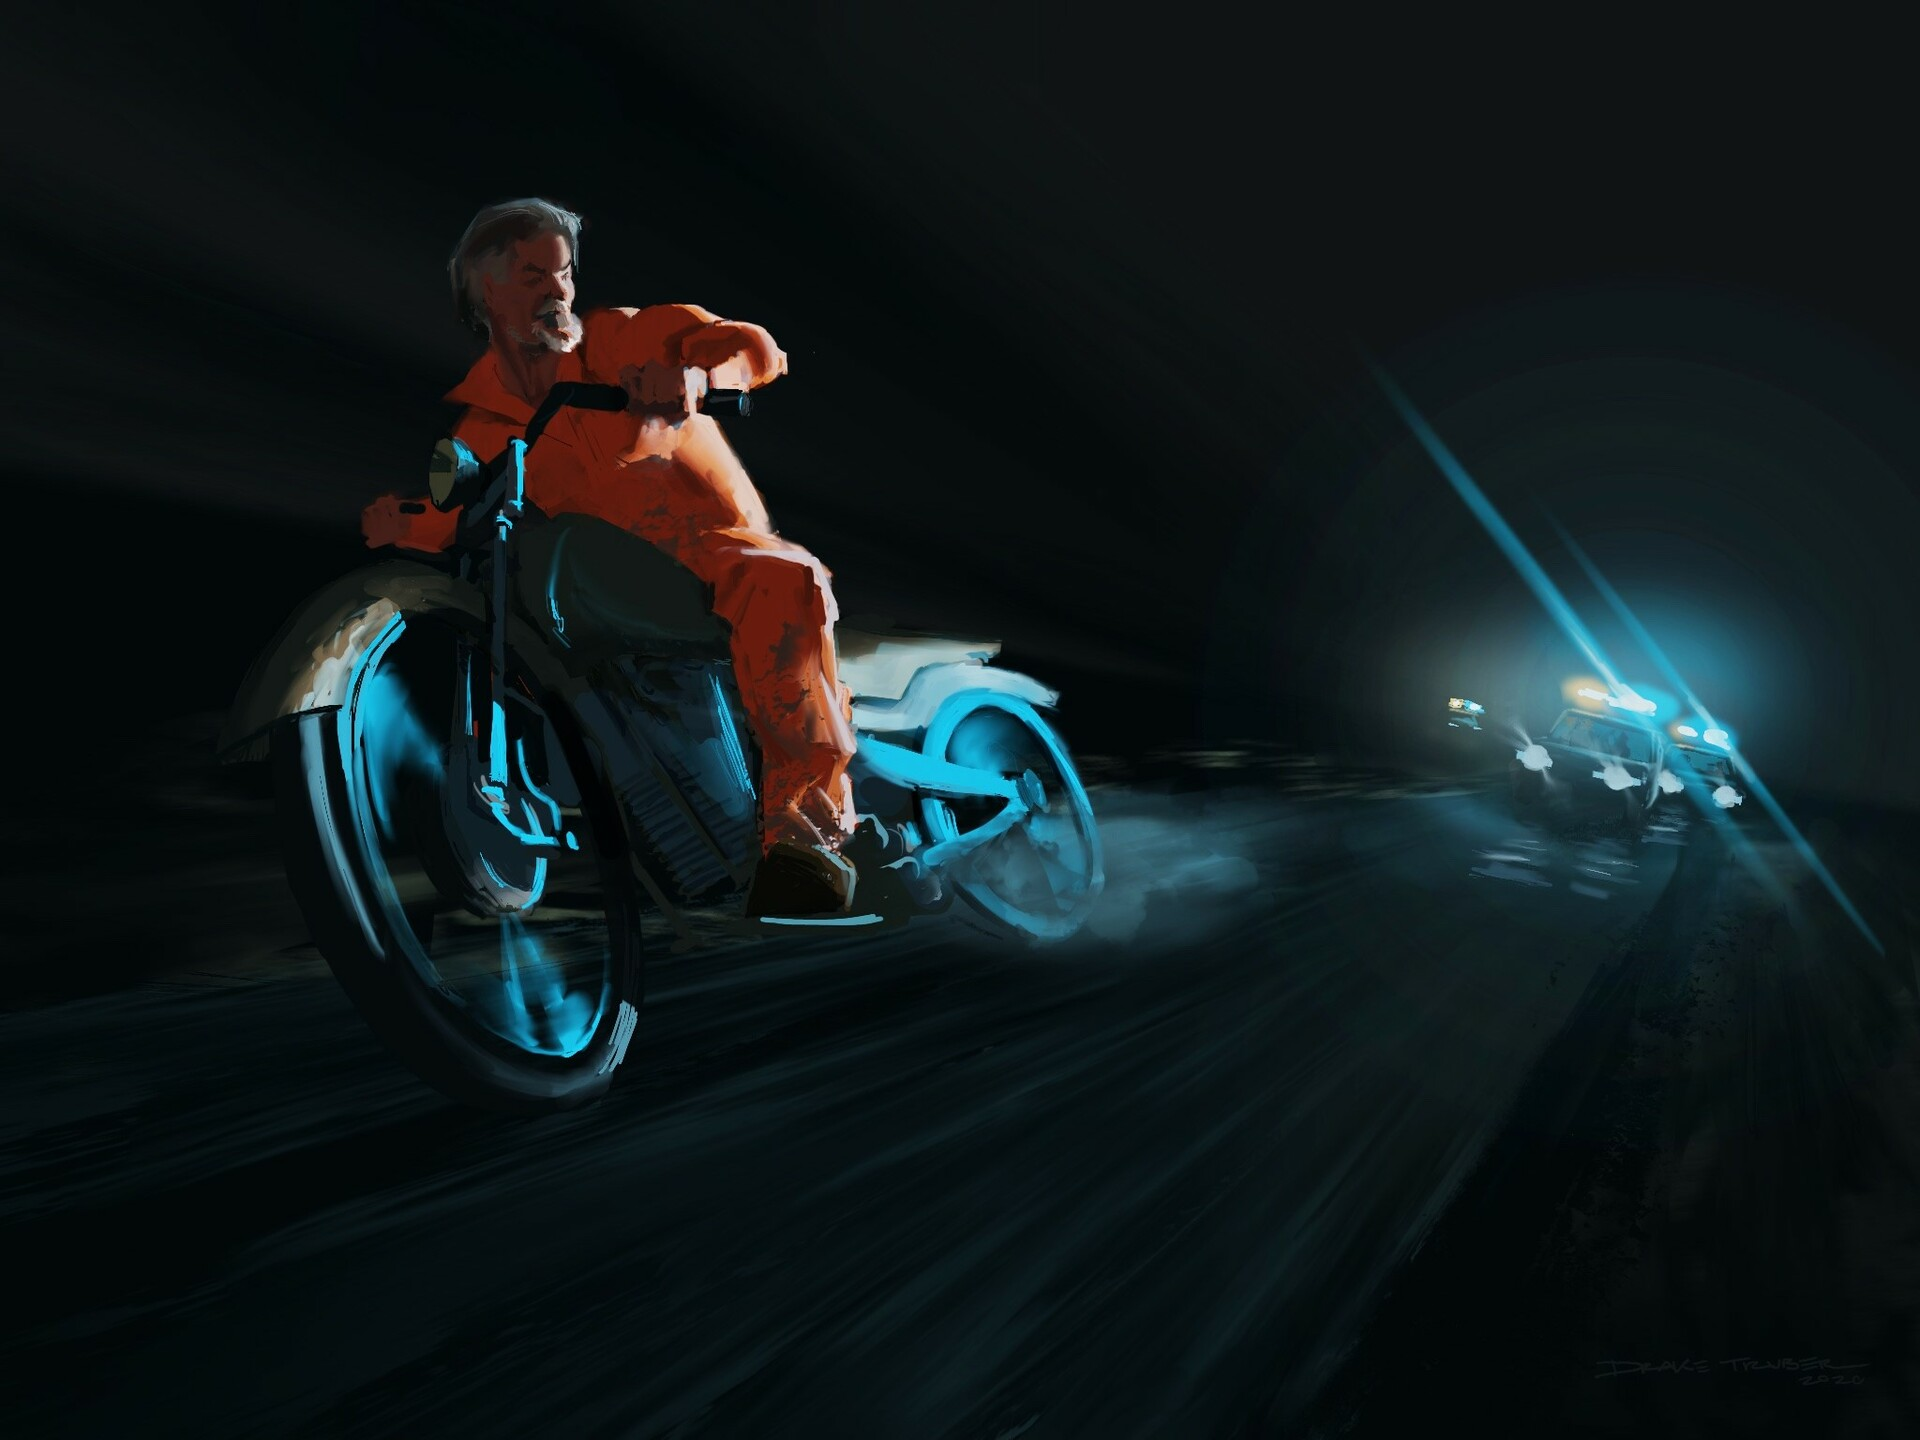 Police chase concept illustration for a film.